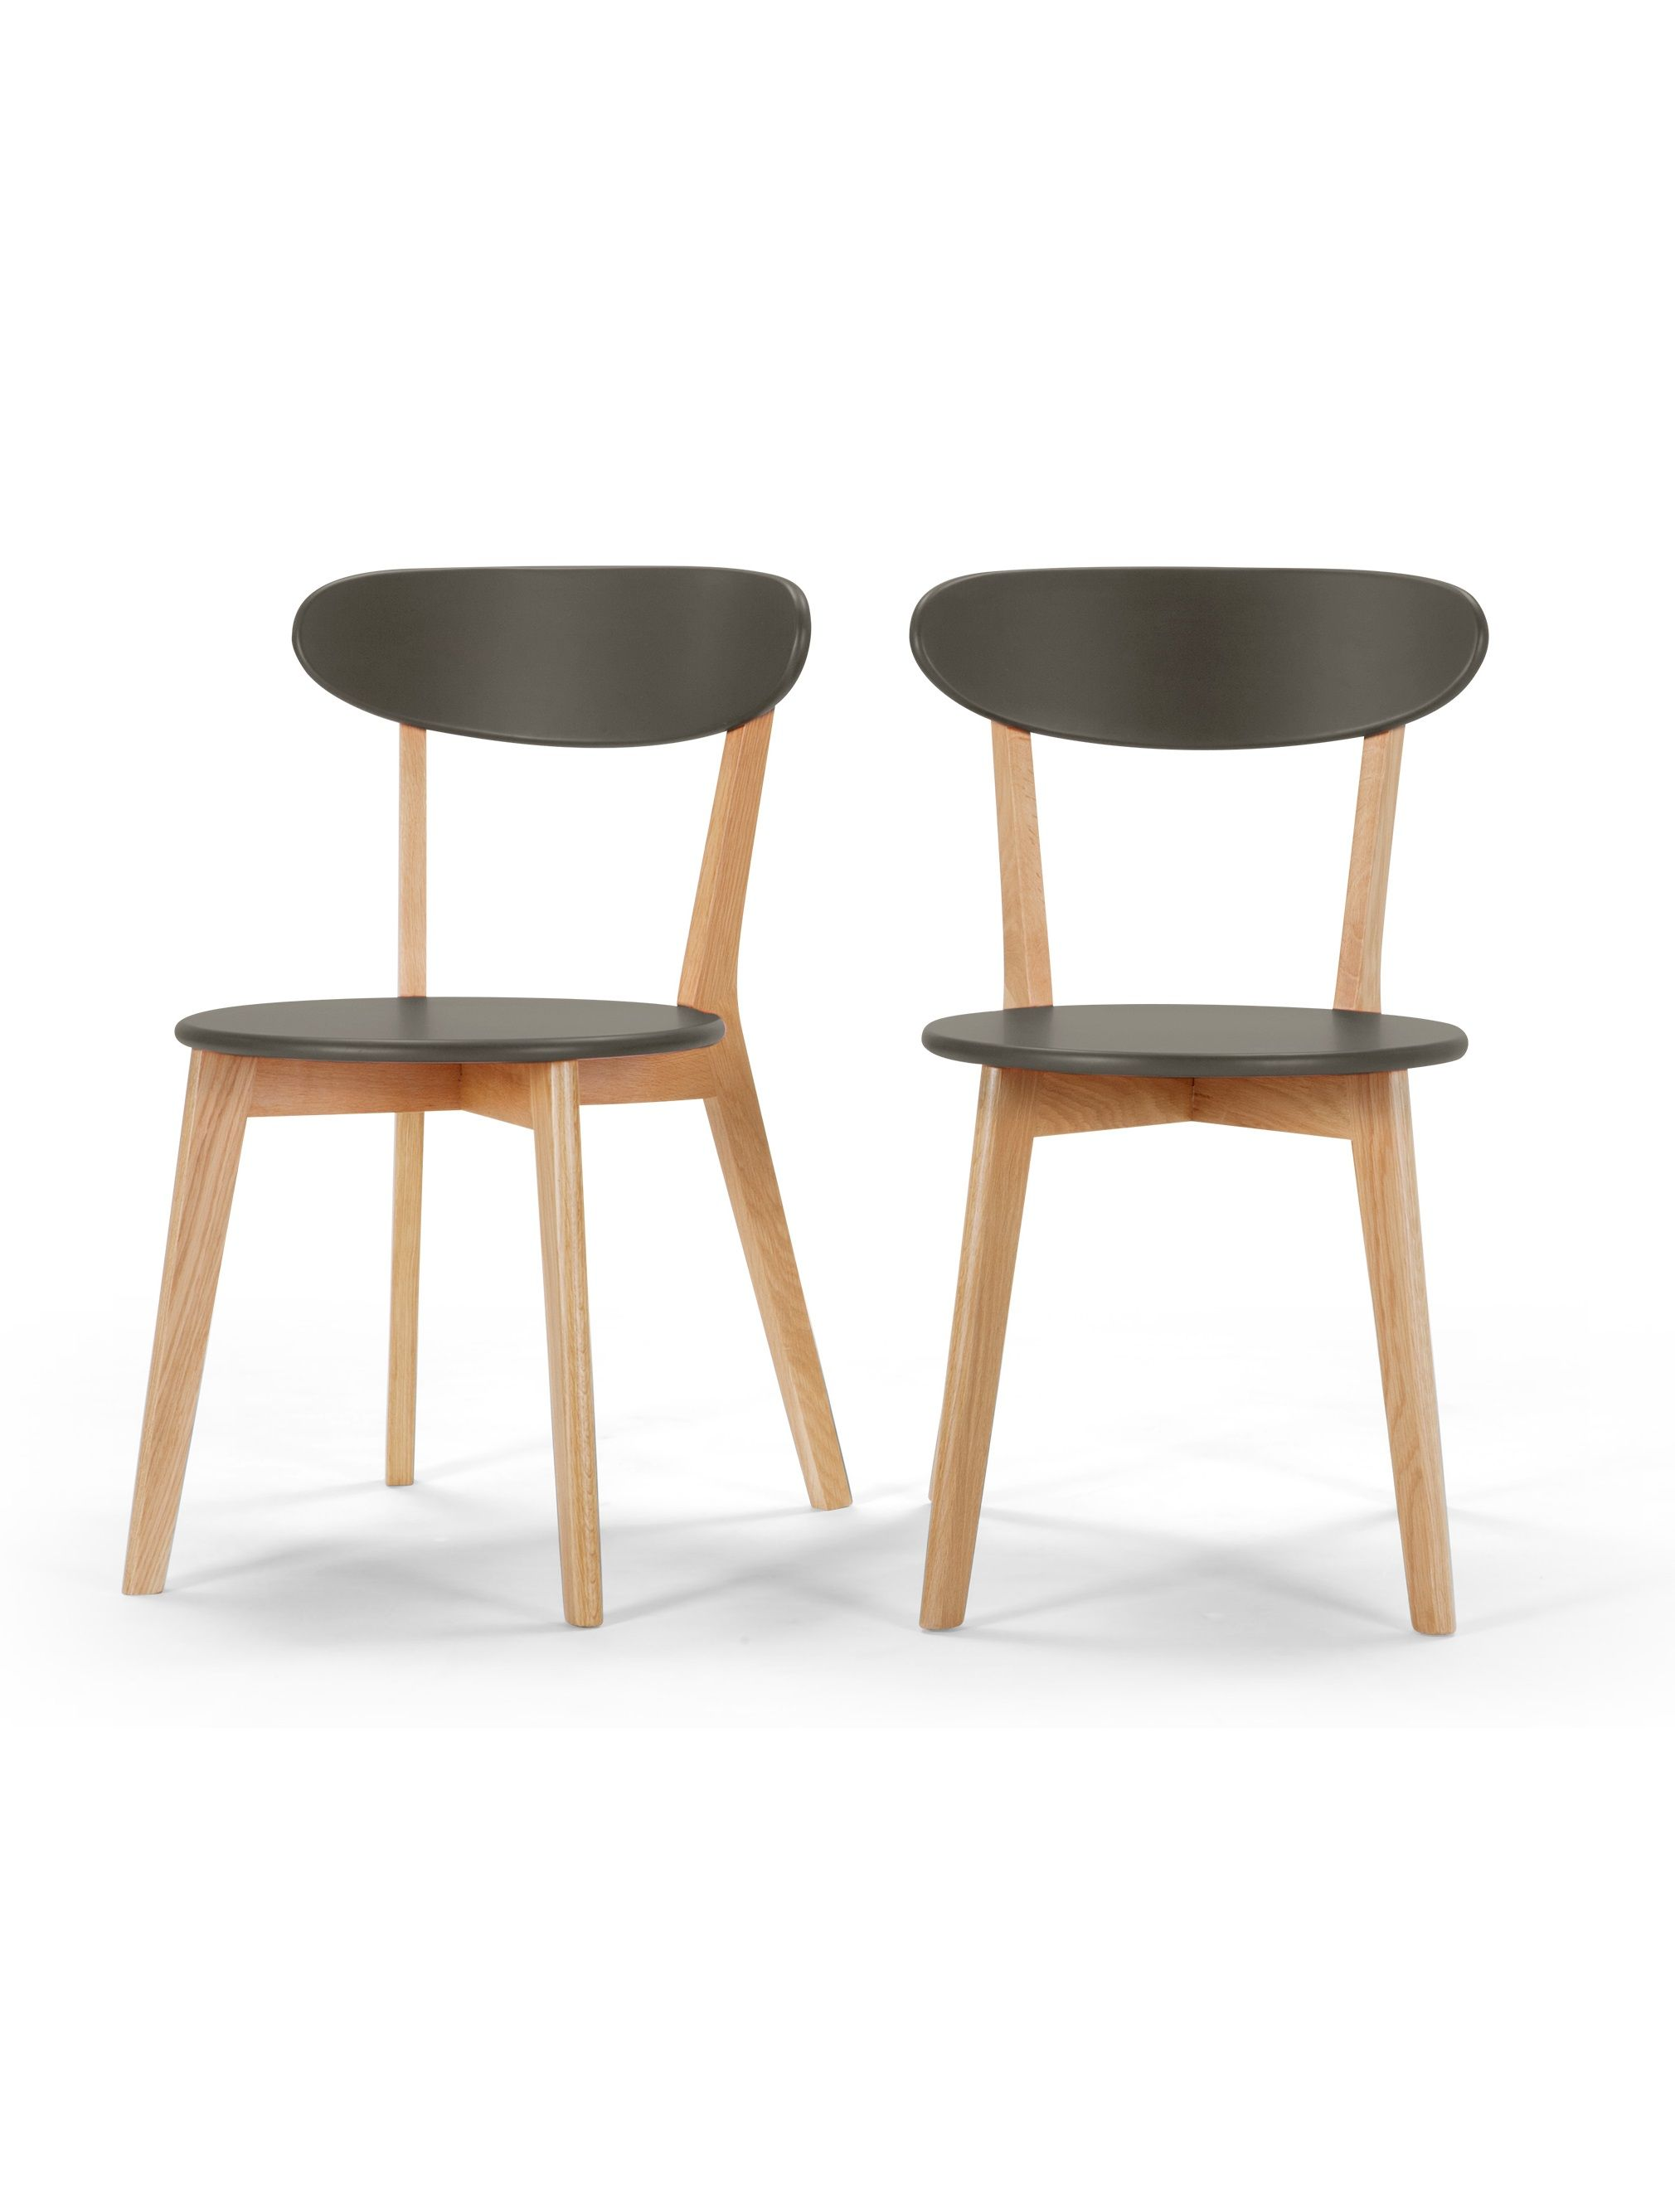 2 Fjord Dining Chairs in Oak and  Grey. £99. MADE.COM